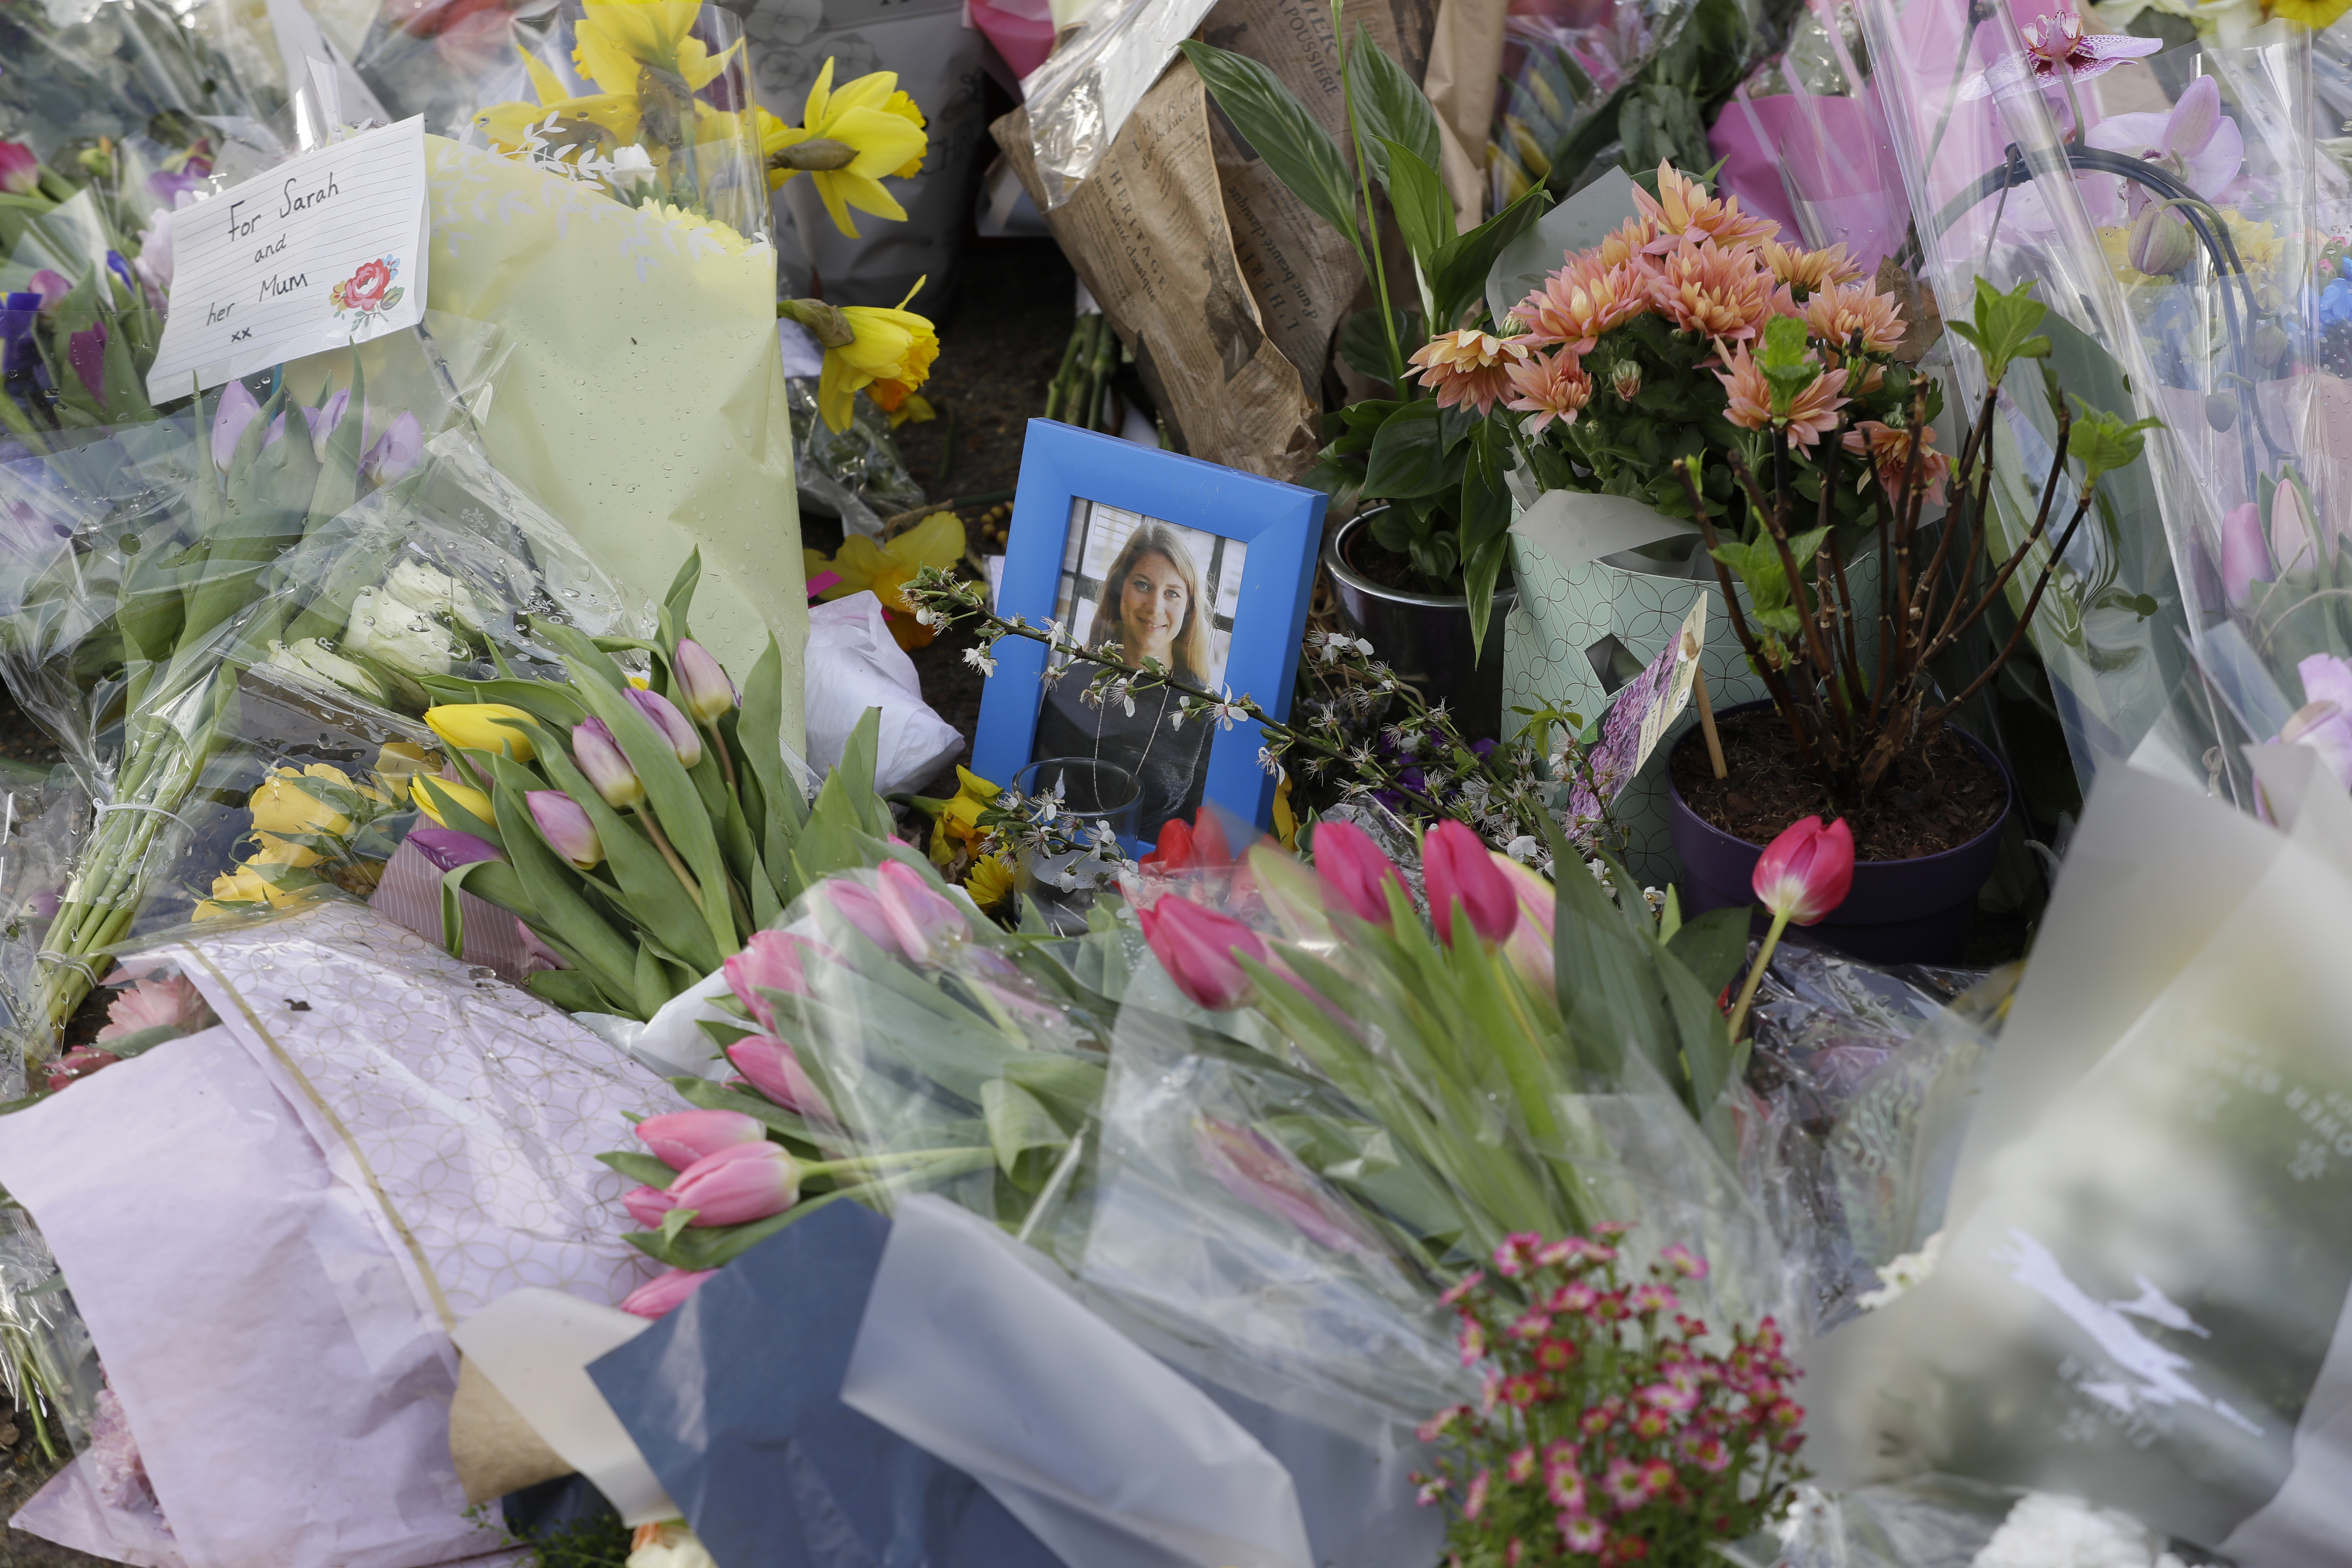 <p>A photograph of Sarah Everard amongst floral tributes and candles placed at the bandstand on Clapham Common, London, Monday March 15, 2021. On Saturday hundreds of people disregarded a judge's ruling and police requests by gathering at Clapham Common in honor of Sarah Everard. Everard disappeared while walking home from a friend's apartment and was found dead a week later. The slaying sent shockwaves across the U.K. because a Metropolitan Police officer is charged with her kidnapping and murder. (AP Photo/Kirsty Wigglesworth)</p>